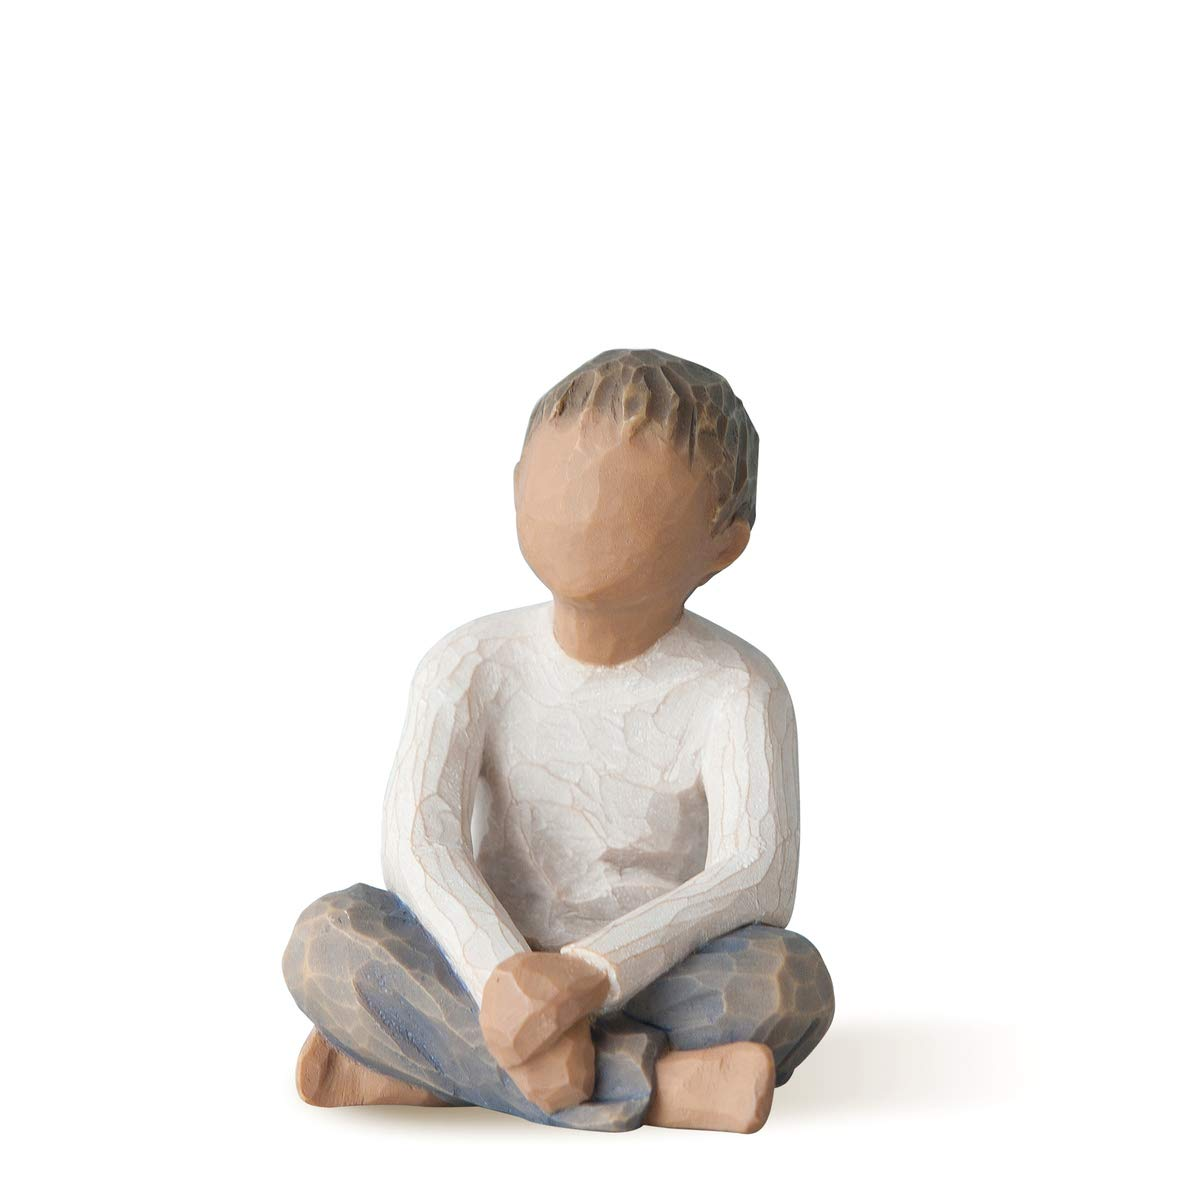 Willow Tree Imaginative Child (Darker Skin Tone & Hair Color), Sculpted Hand-Painted Figure